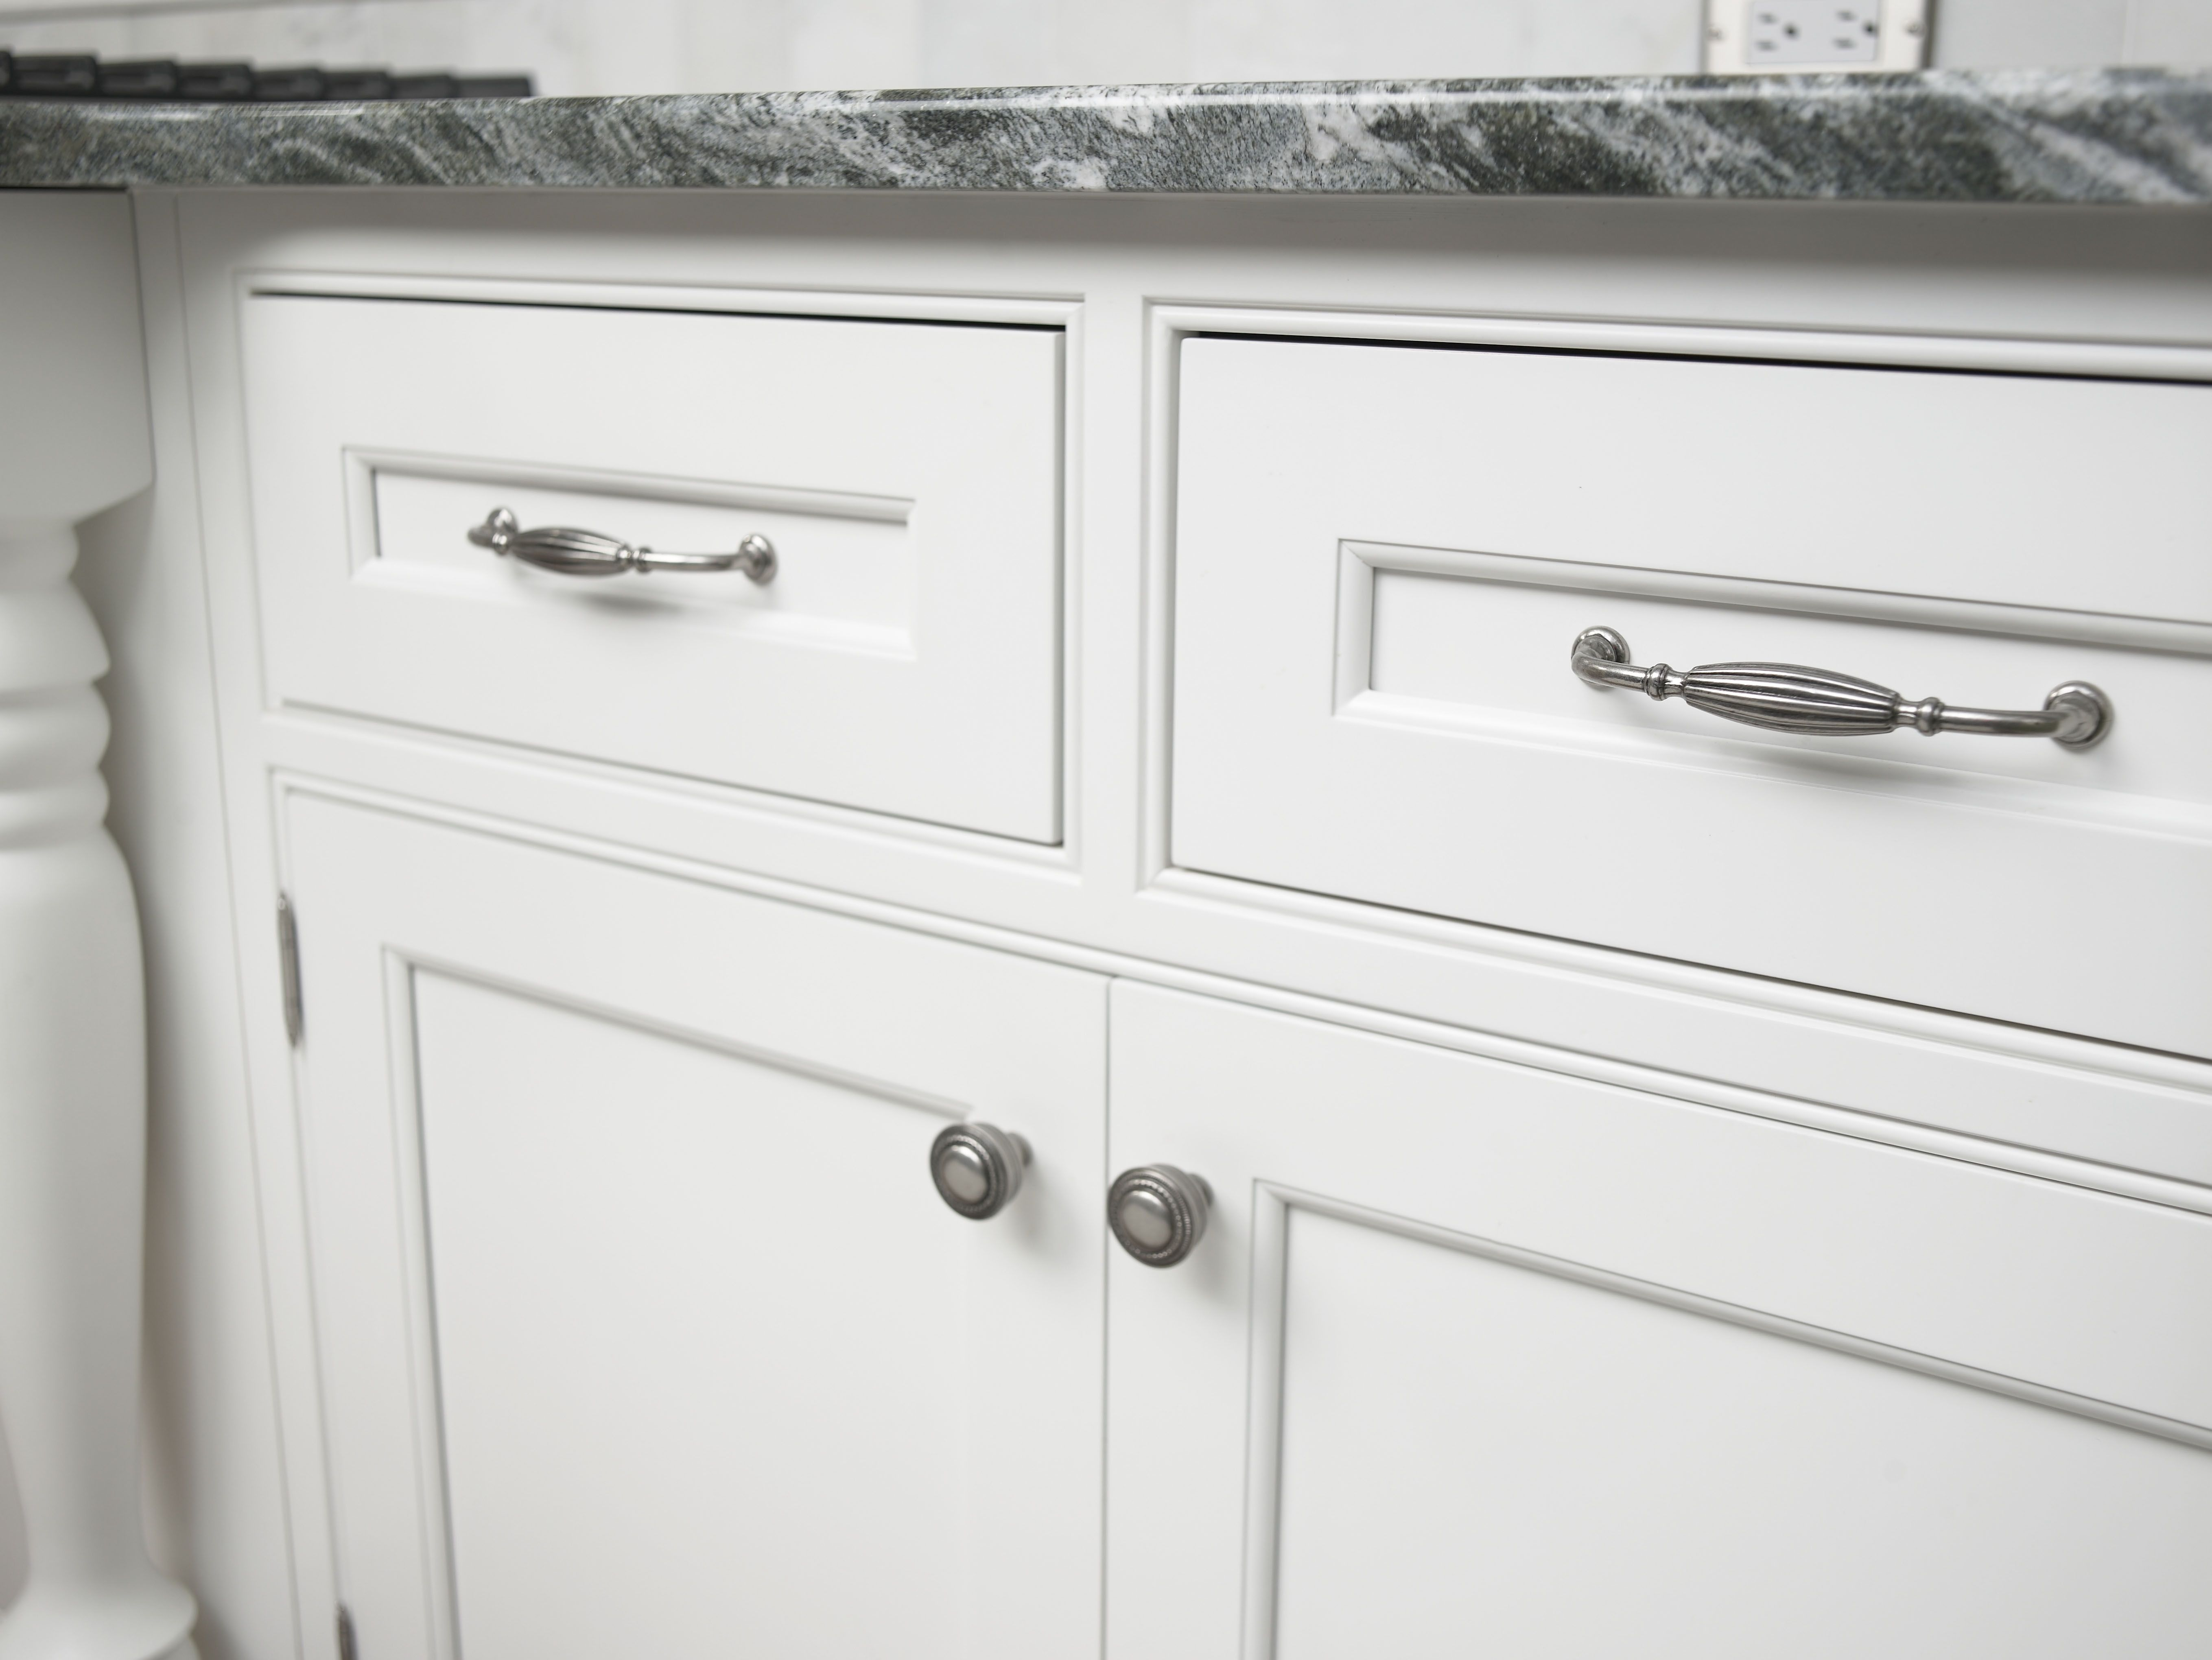 top knobs m143 pewter antique tuscany 5 inch center to center handle cabinet pull - Topknobs